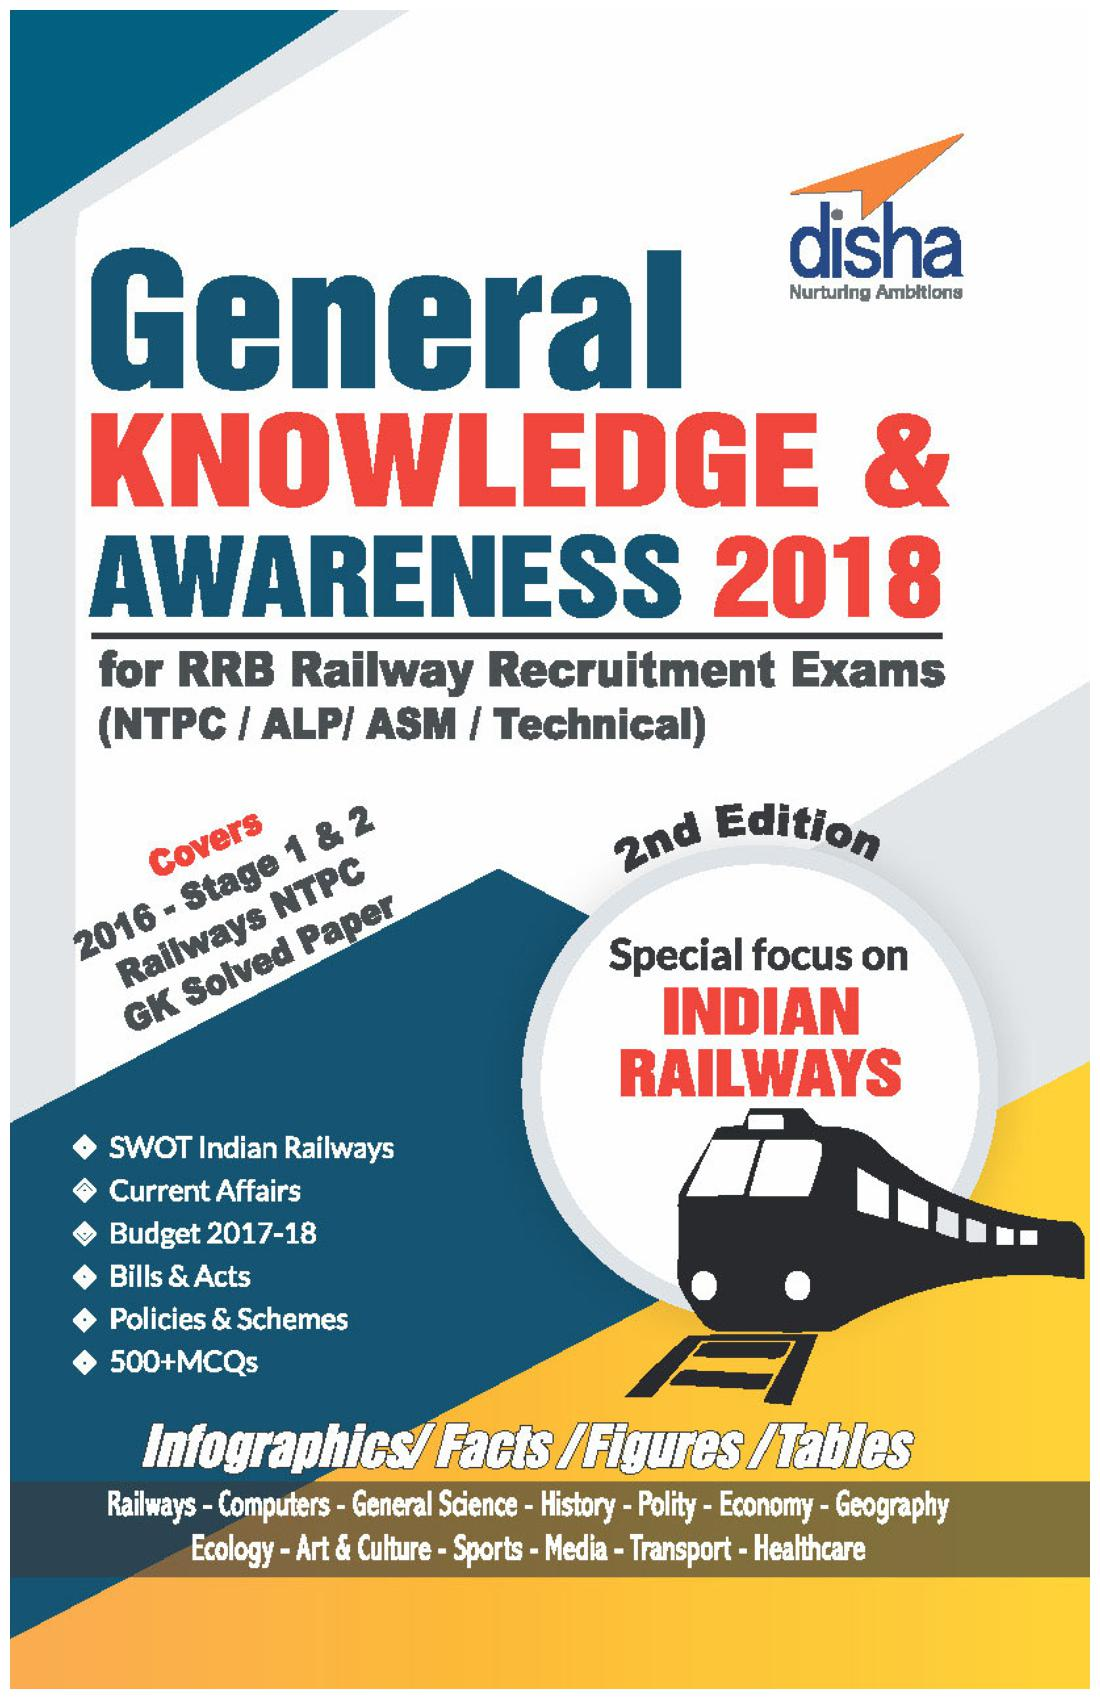 General Knowledge And Awareness 2018 For Rrb Railway Recruitment Exams (Ntpc/ Alp/ Asm/ Technical) 2Nd Edition